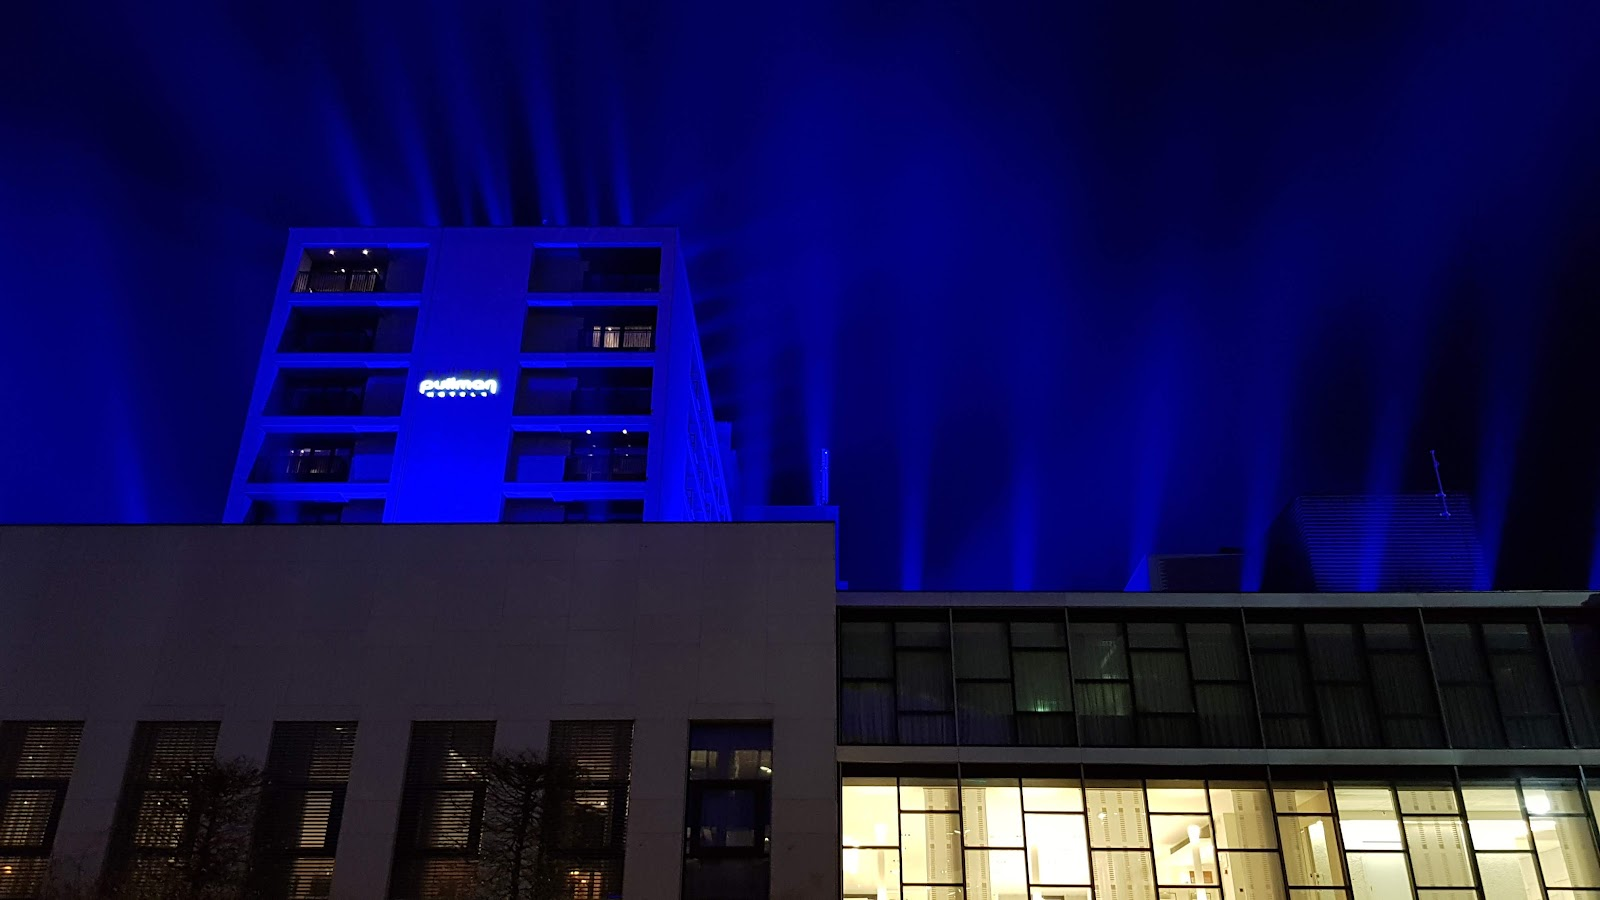 Blue lights